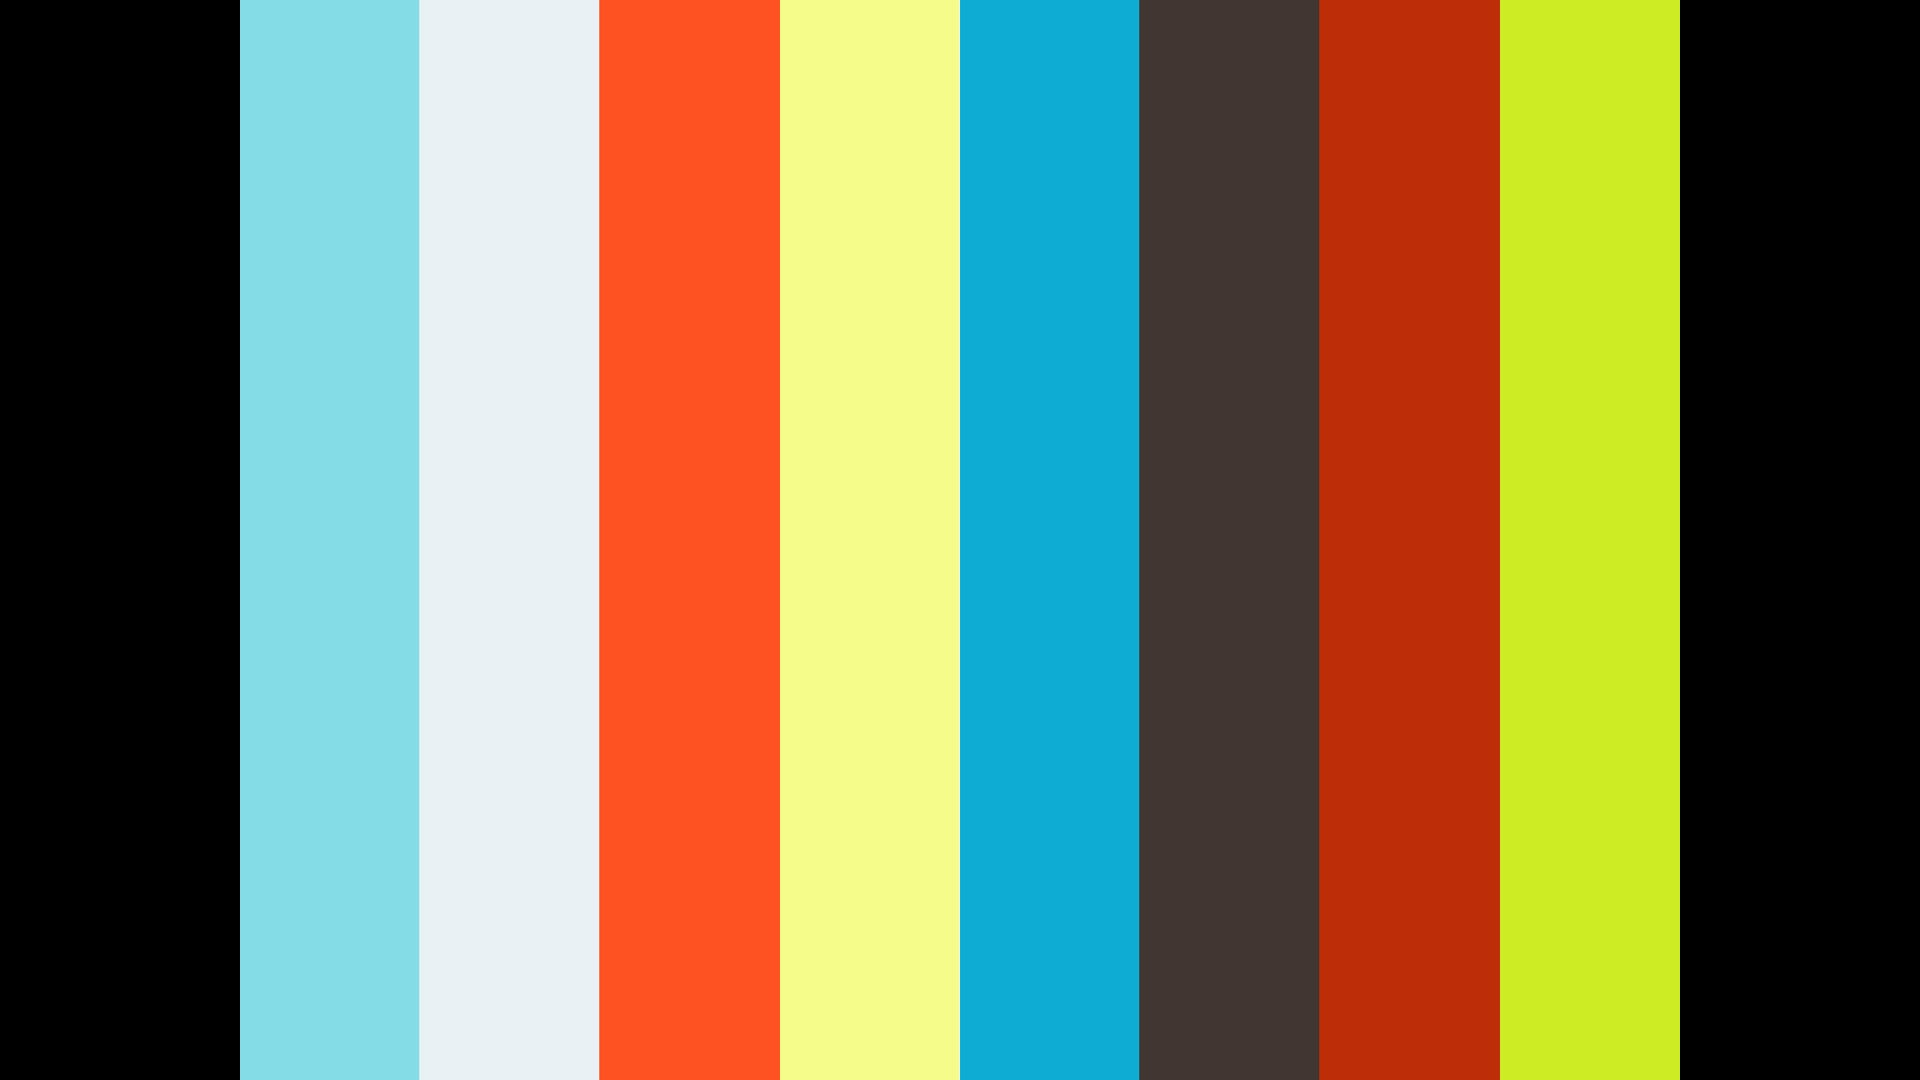 Four Calls You Should Take - Part 1 (September 4, 2019)